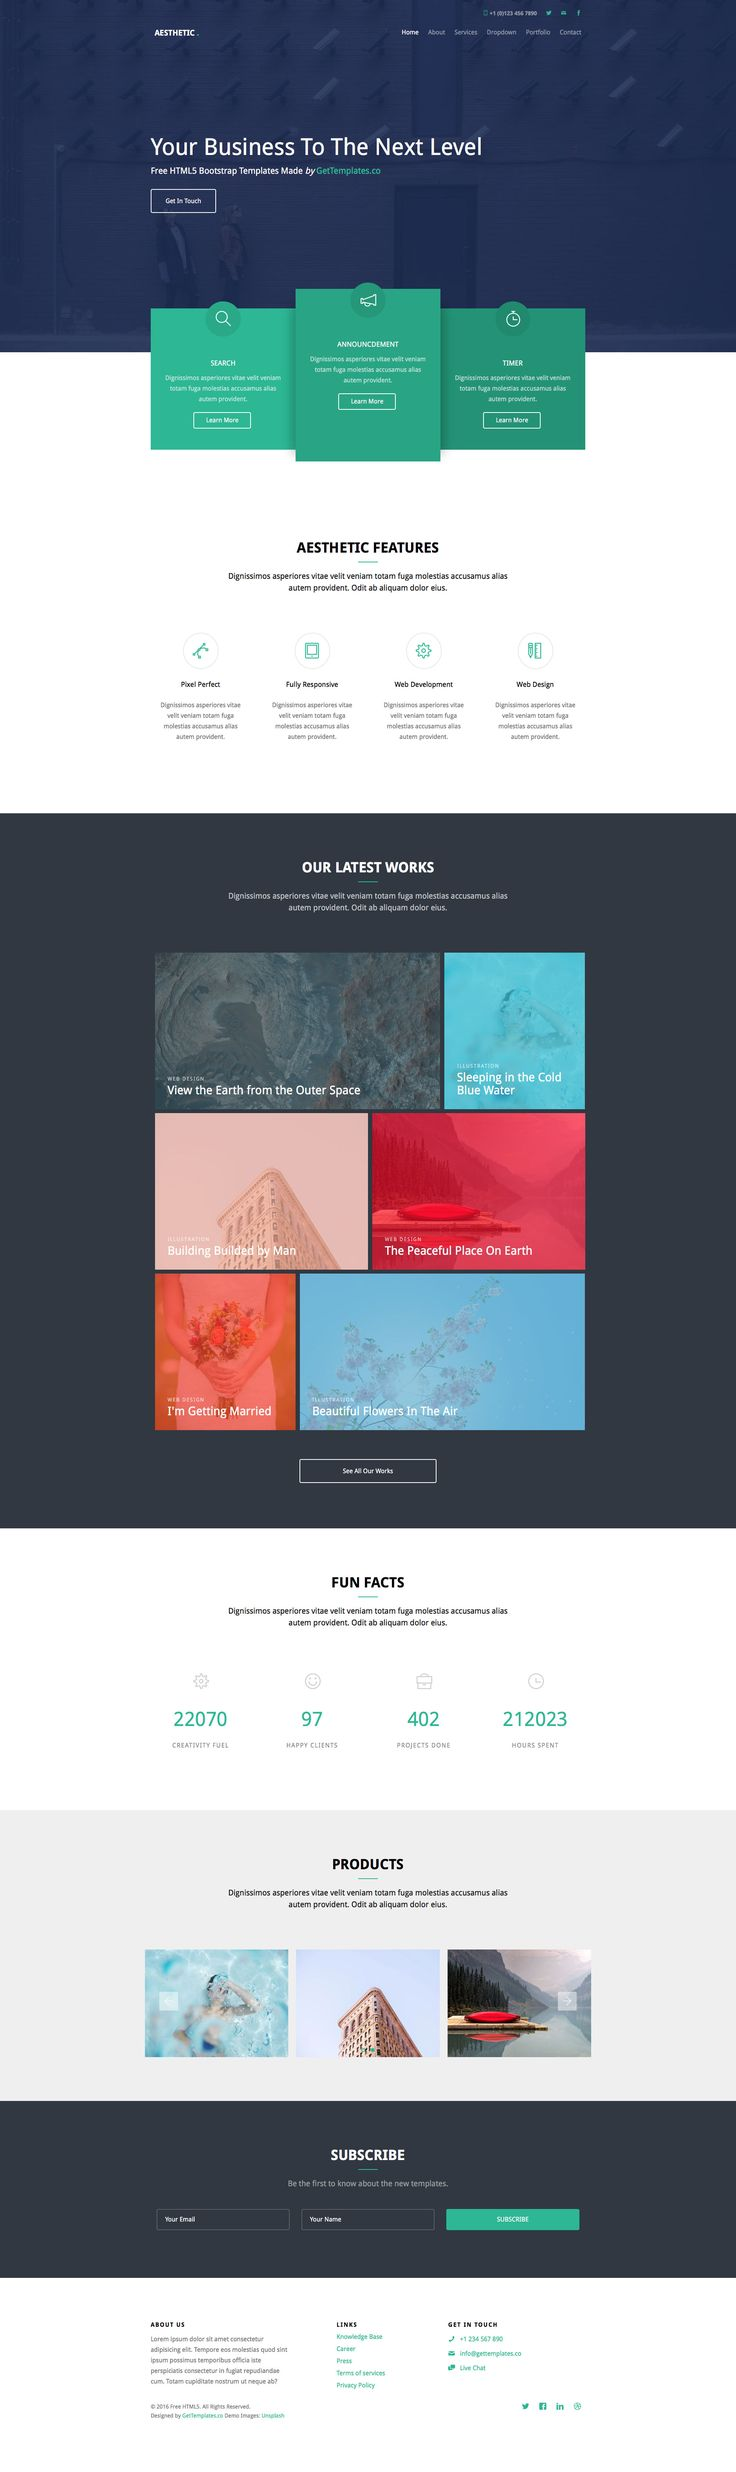 Aesthetic is a free responsive HTML5 website template based on Bootstrap 3 front-end framework. The perfect choice for portfolio, agency, landing websites. This template is build with features like drop-down menu, off-canvas menu on mobile, smooth animation, carousel, jQuery counter and many more.